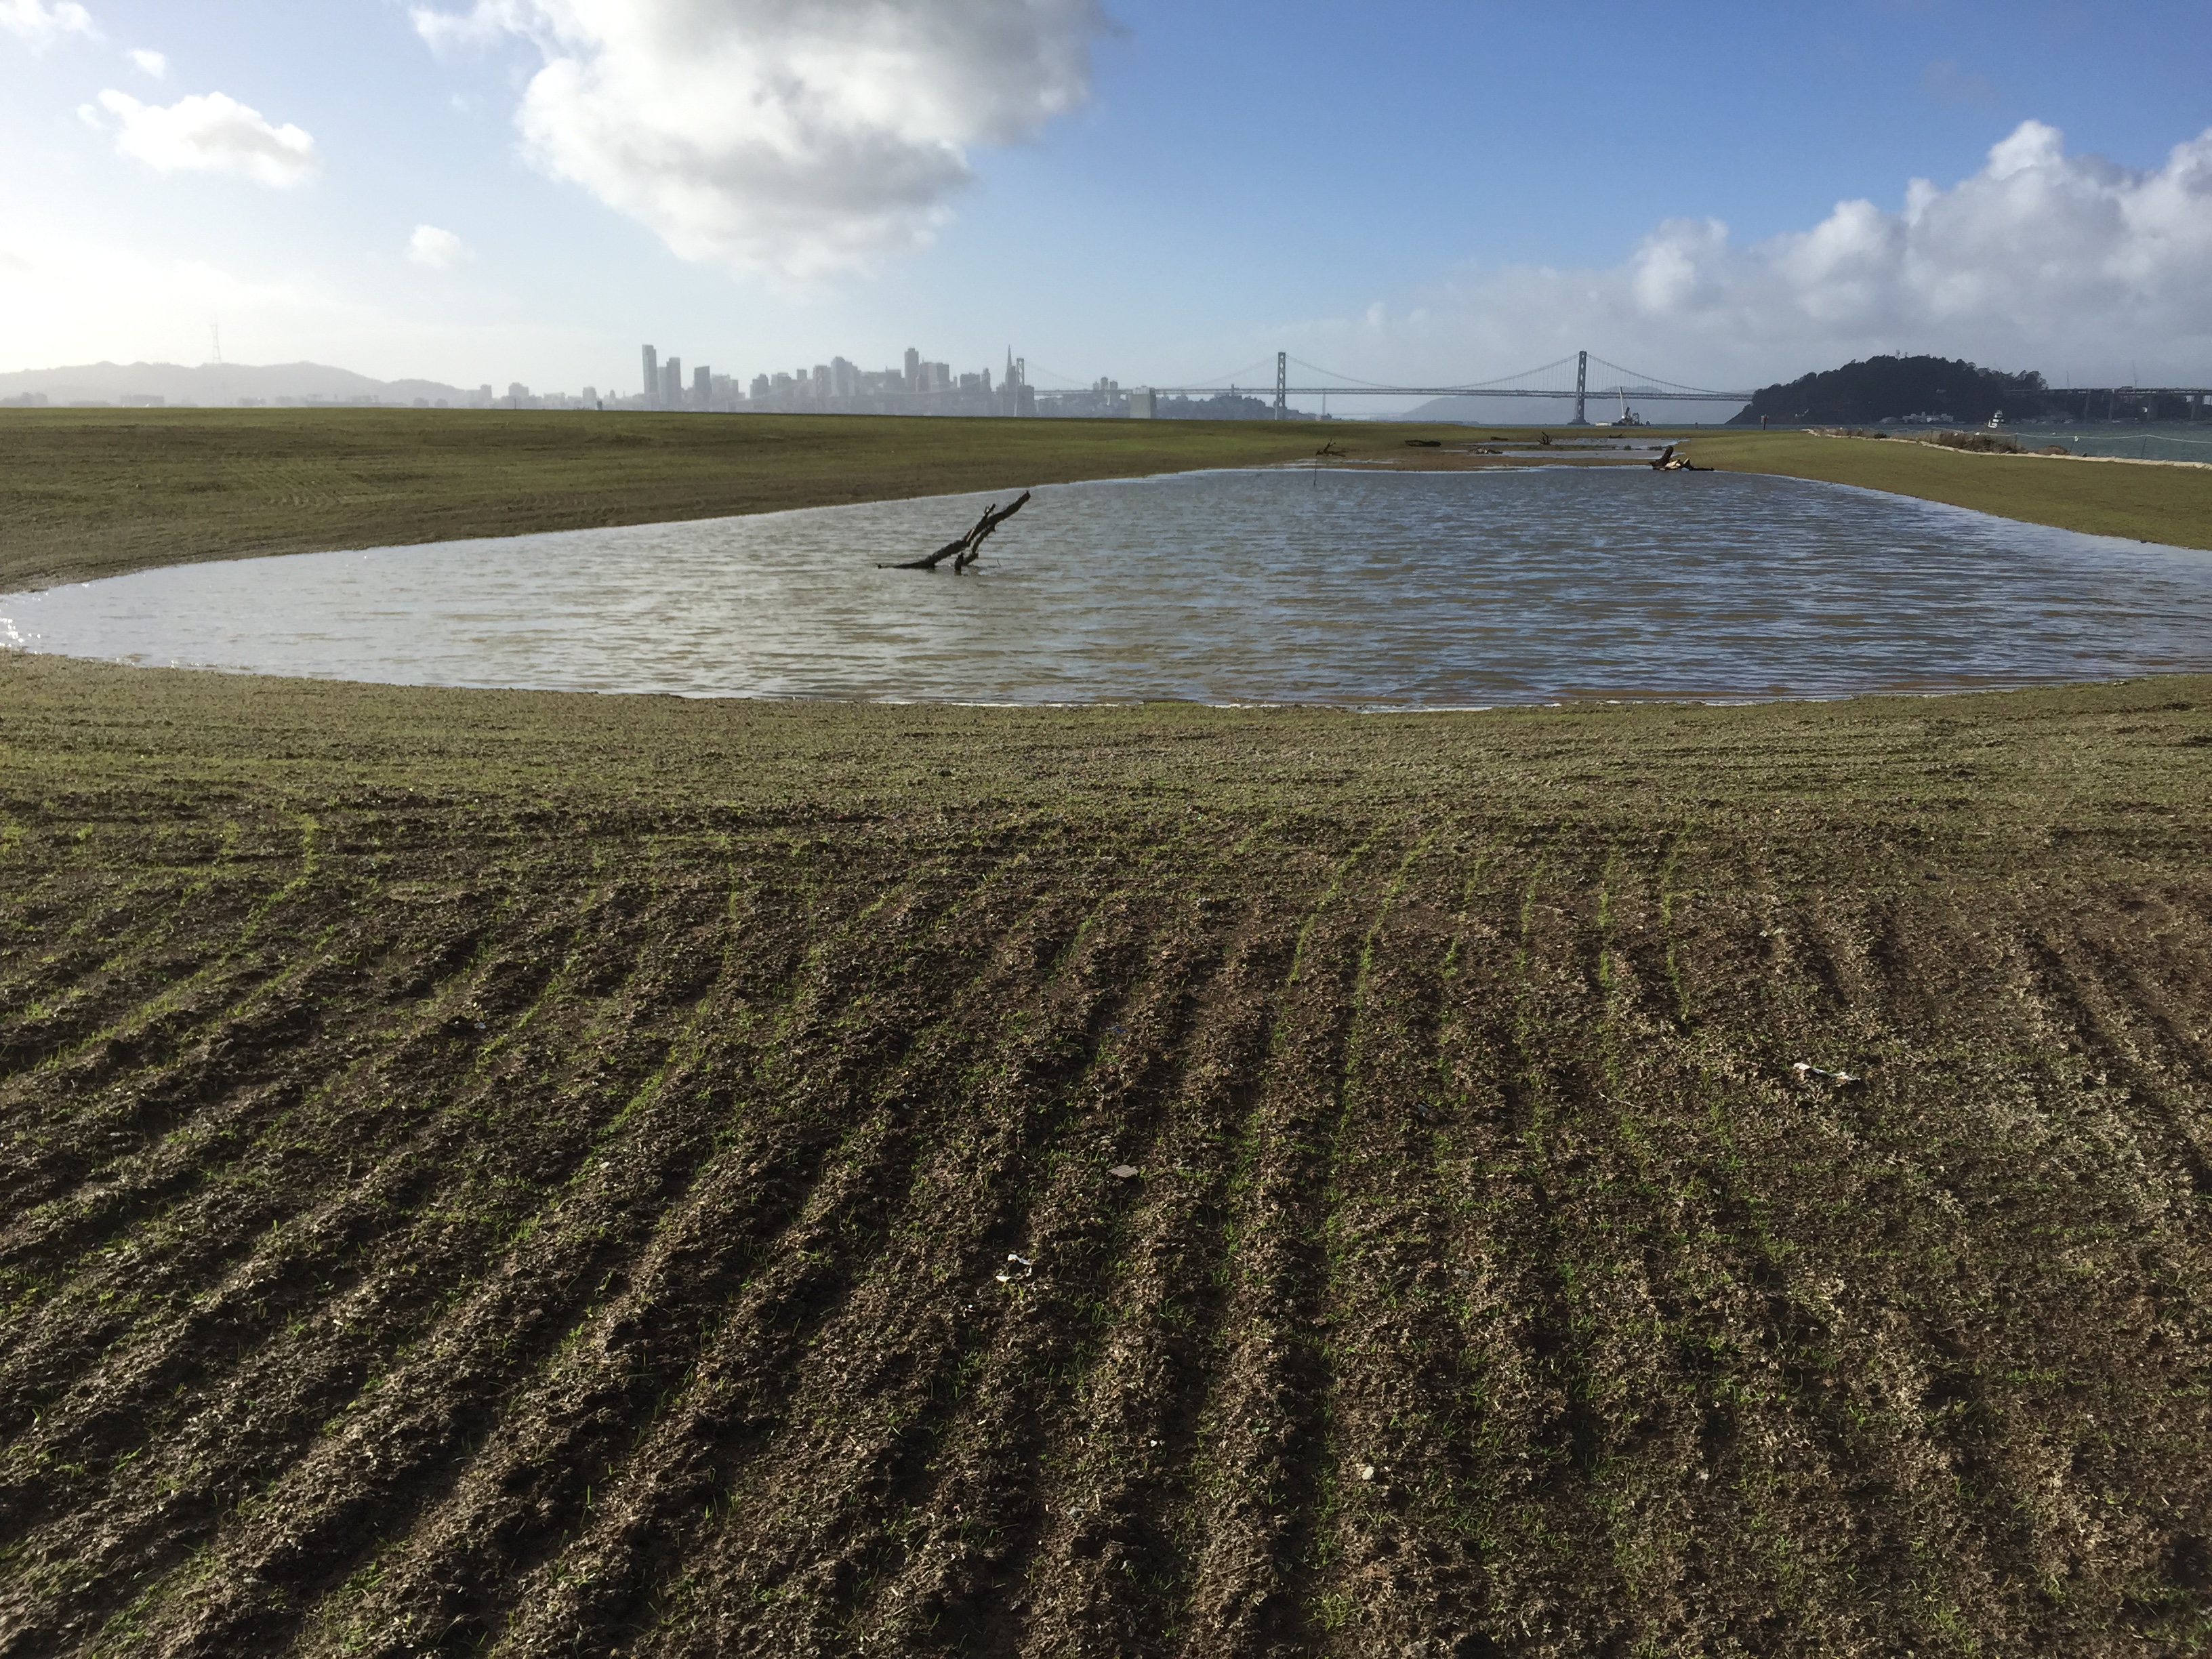 New Site 1 wetland on January 13, 2016, with San Francisco in background. Rows in soil with emerging growth were created during sowing of seeds. Navy photo.